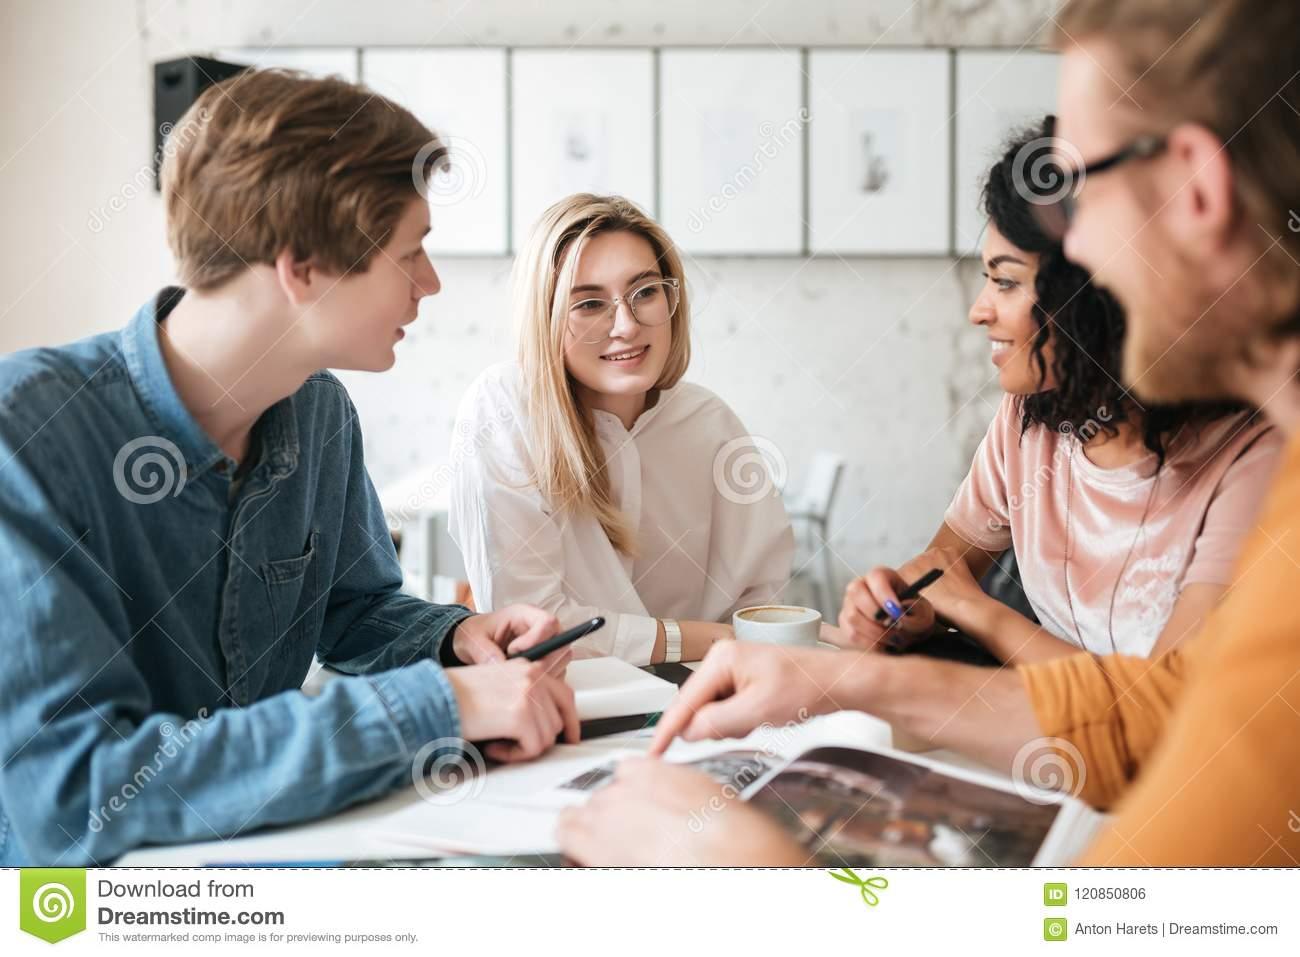 Young People Sitting In Office And Happily Looking At Each Other Discussion  Something. Group Of